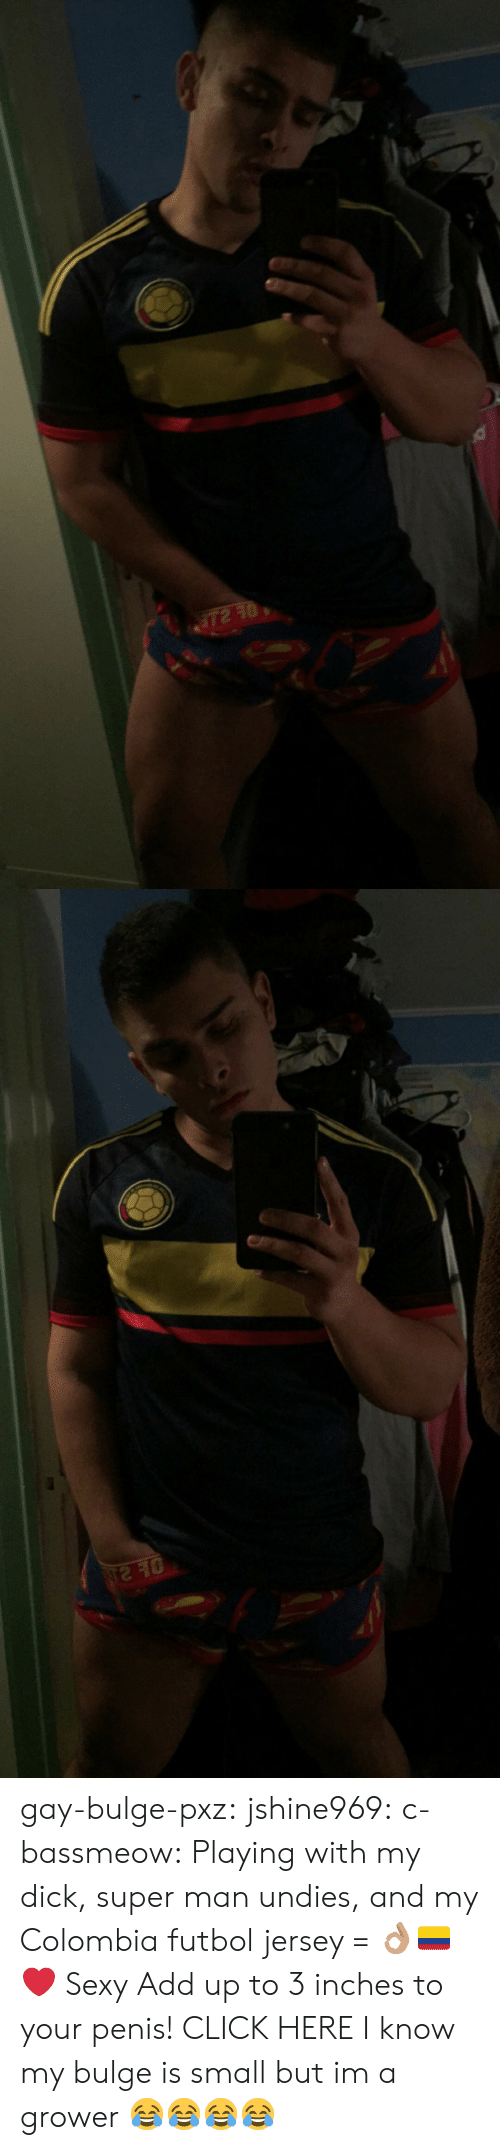 Click, Sexy, and Tumblr: gay-bulge-pxz:  jshine969:  c-bassmeow:  Playing with my dick, super man undies, and my Colombia futbol jersey = 👌🏽🇨🇴❤️  Sexy   Add up to 3 inches to your penis! CLICK HERE  I know my bulge is small but im a grower 😂😂😂😂